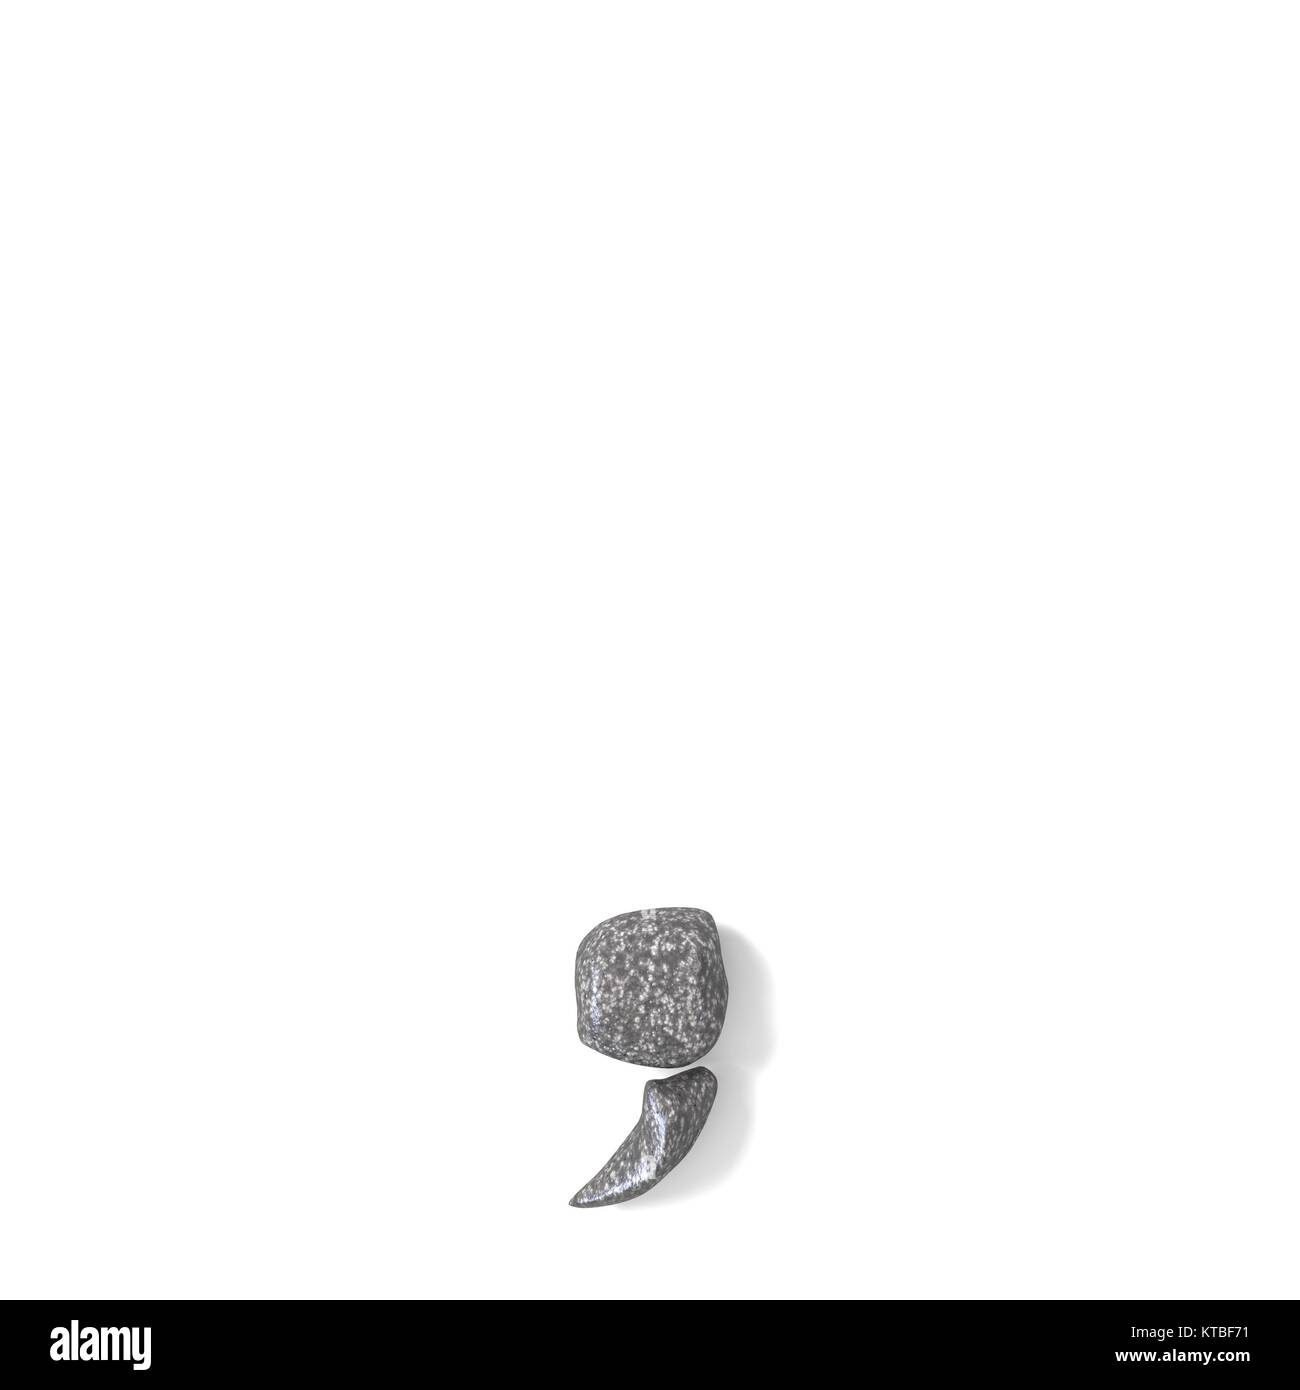 Comma punctuation mark made of rocks 3D - Stock Image